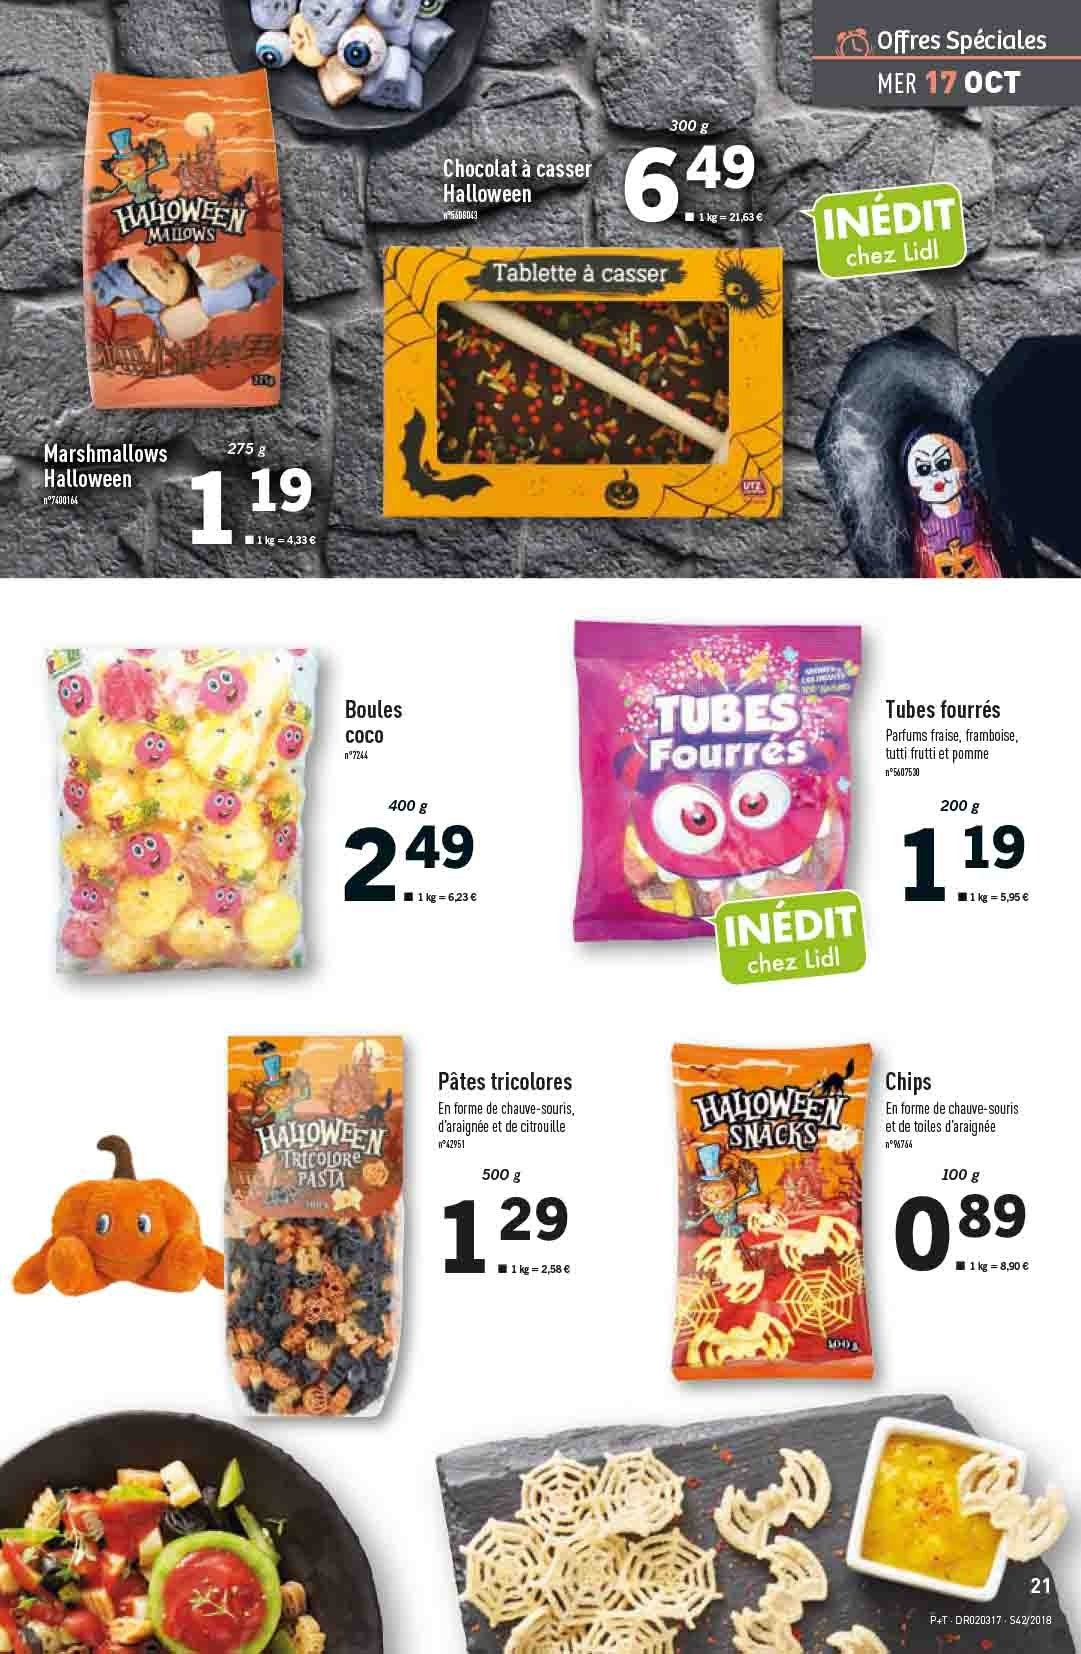 Catalogue Lidl - 17.10.2018 - 23.10.2018. Page 21.